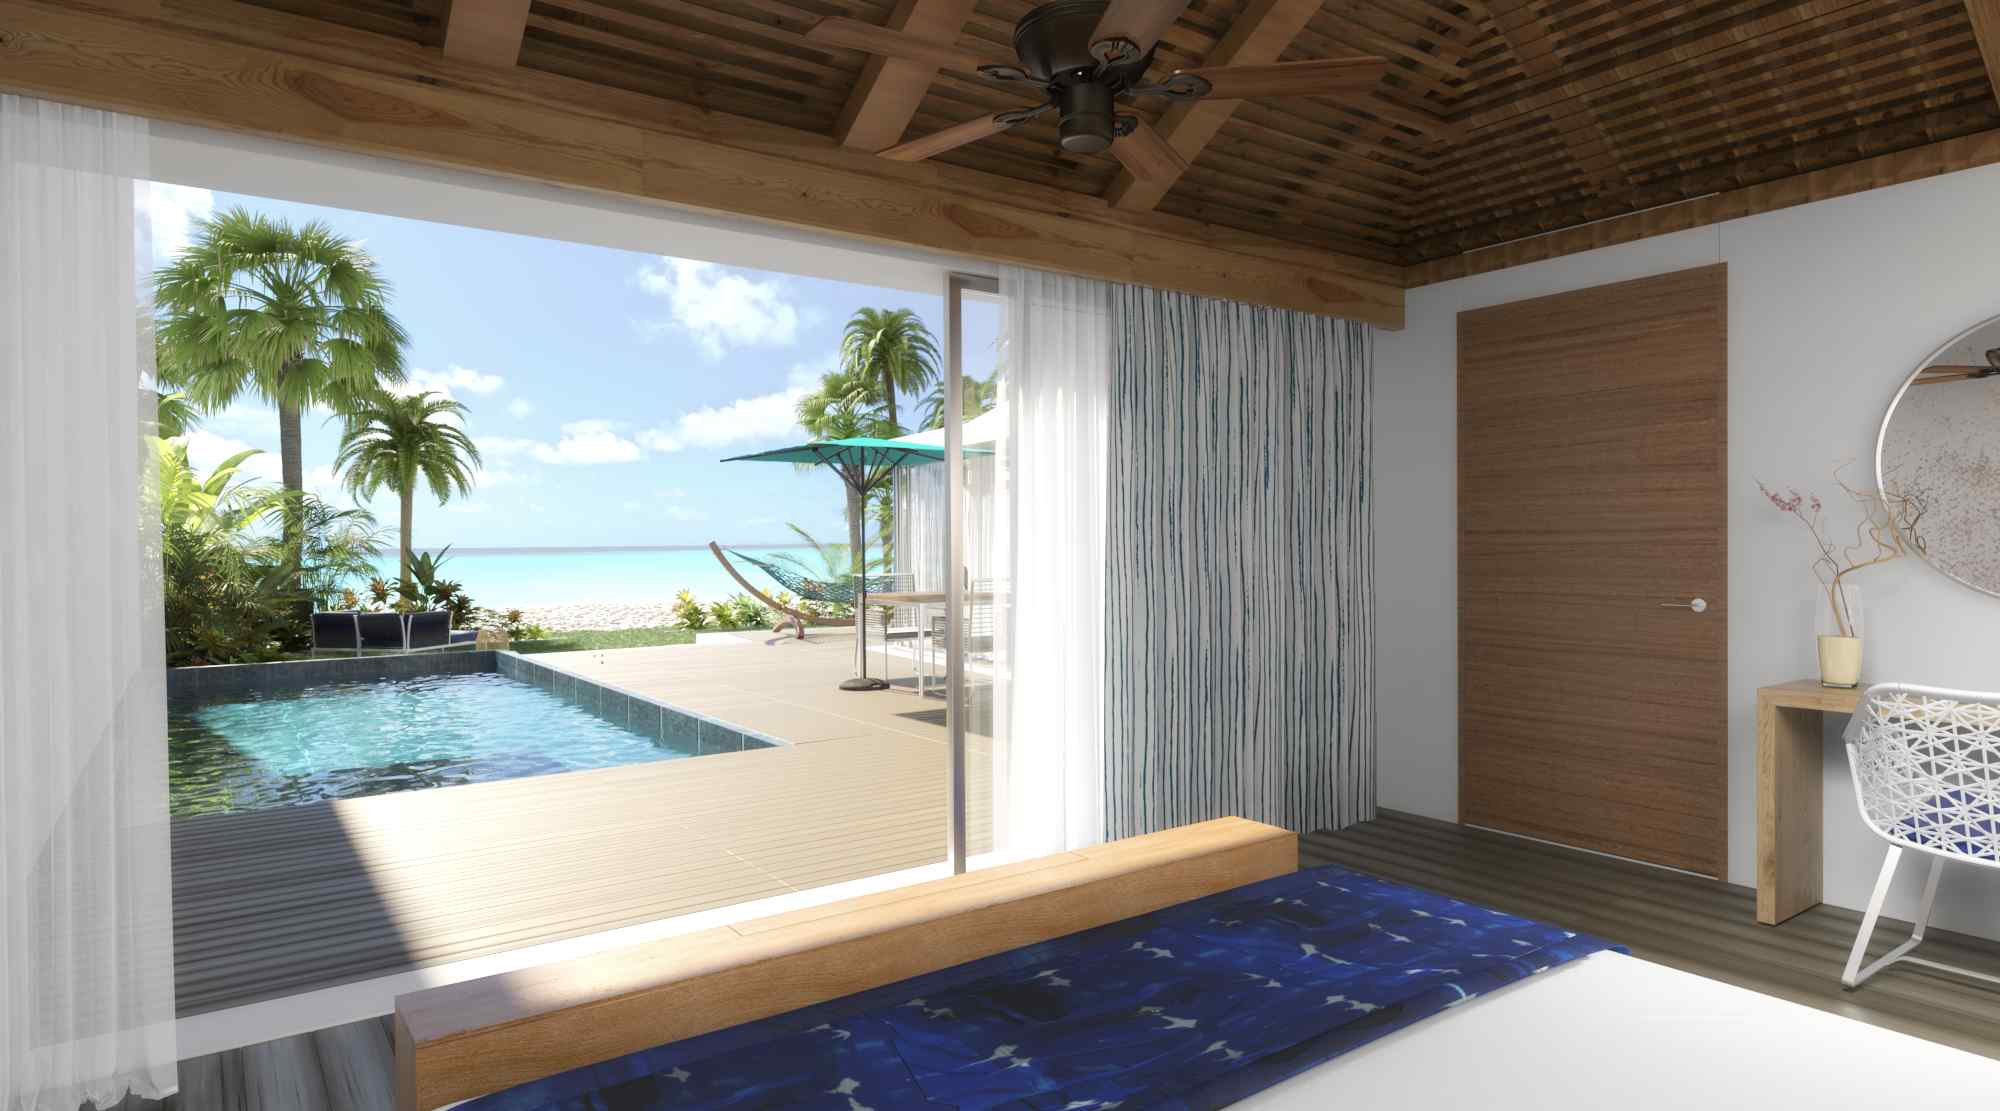 Club Med, the global pioneer and leader of all-inclusive vacations, officially opened Club Med Michès Playa Esmeralda, its first-ever Exclusive Collection resort in the Americas, on Nov. 23, 2019.